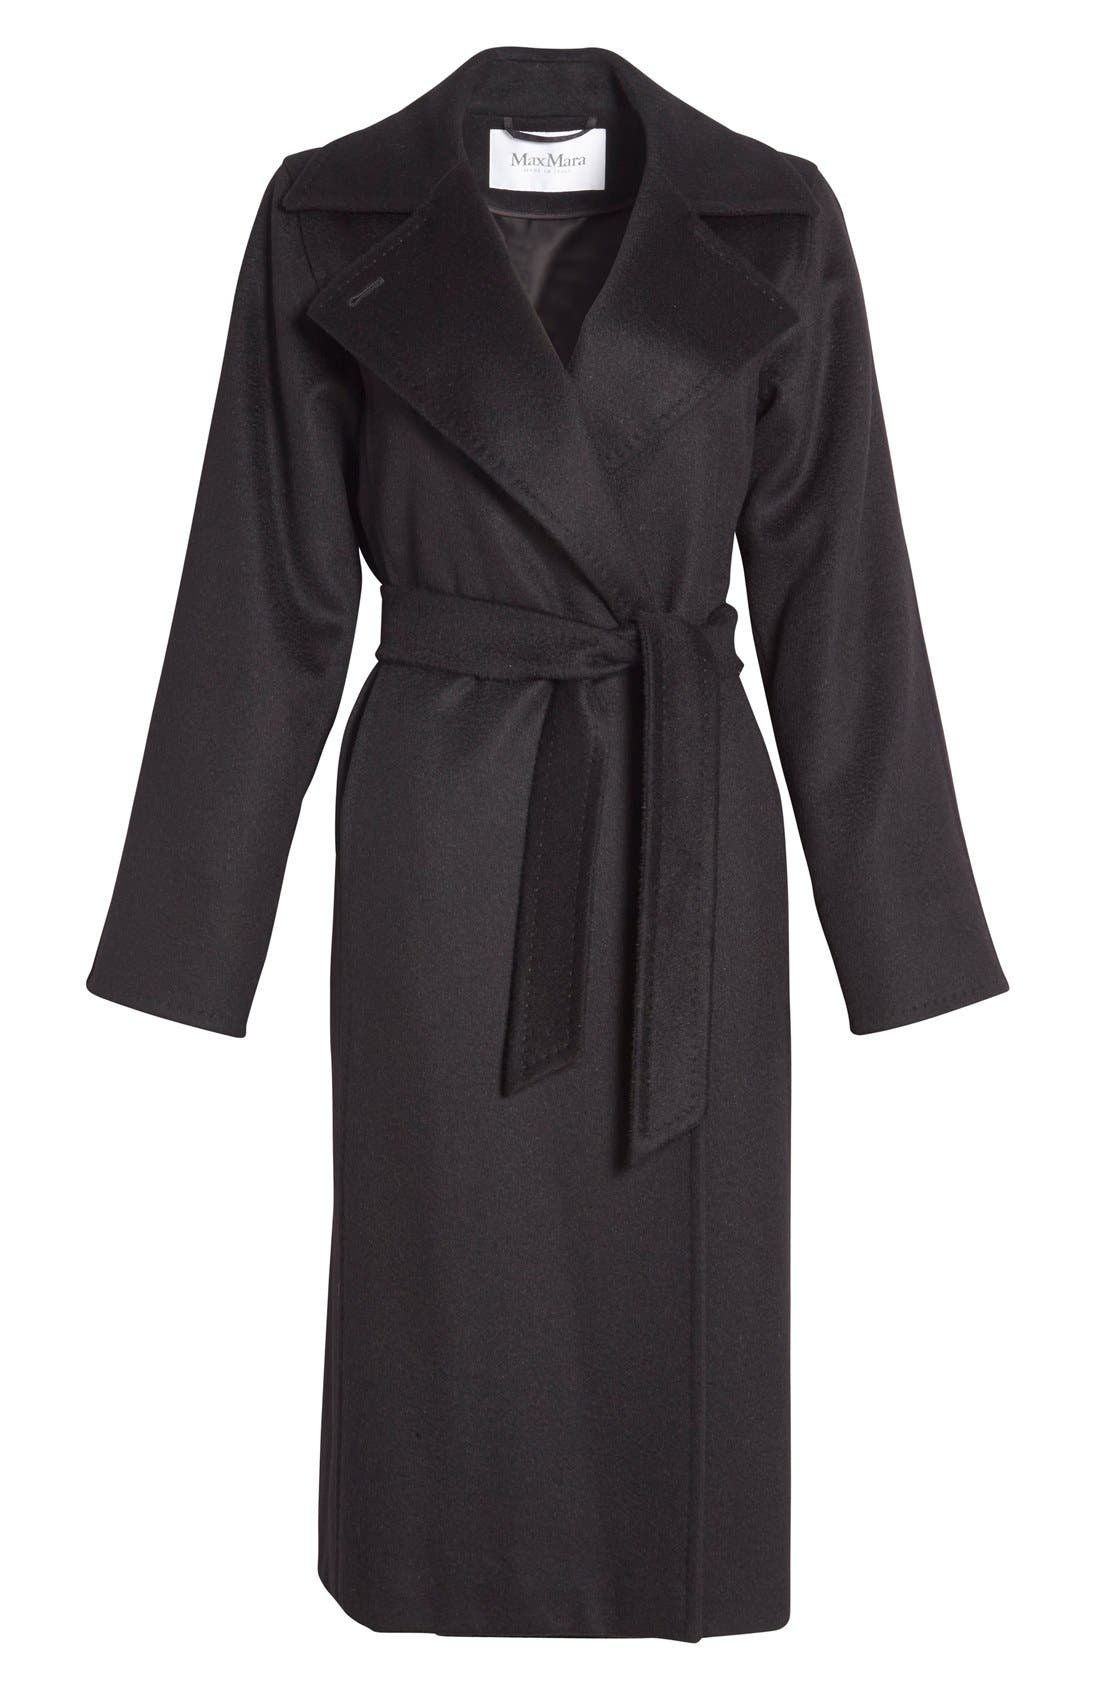 'Manuela' Camel Hair Coat,                             Alternate thumbnail 4, color,                             BLACK